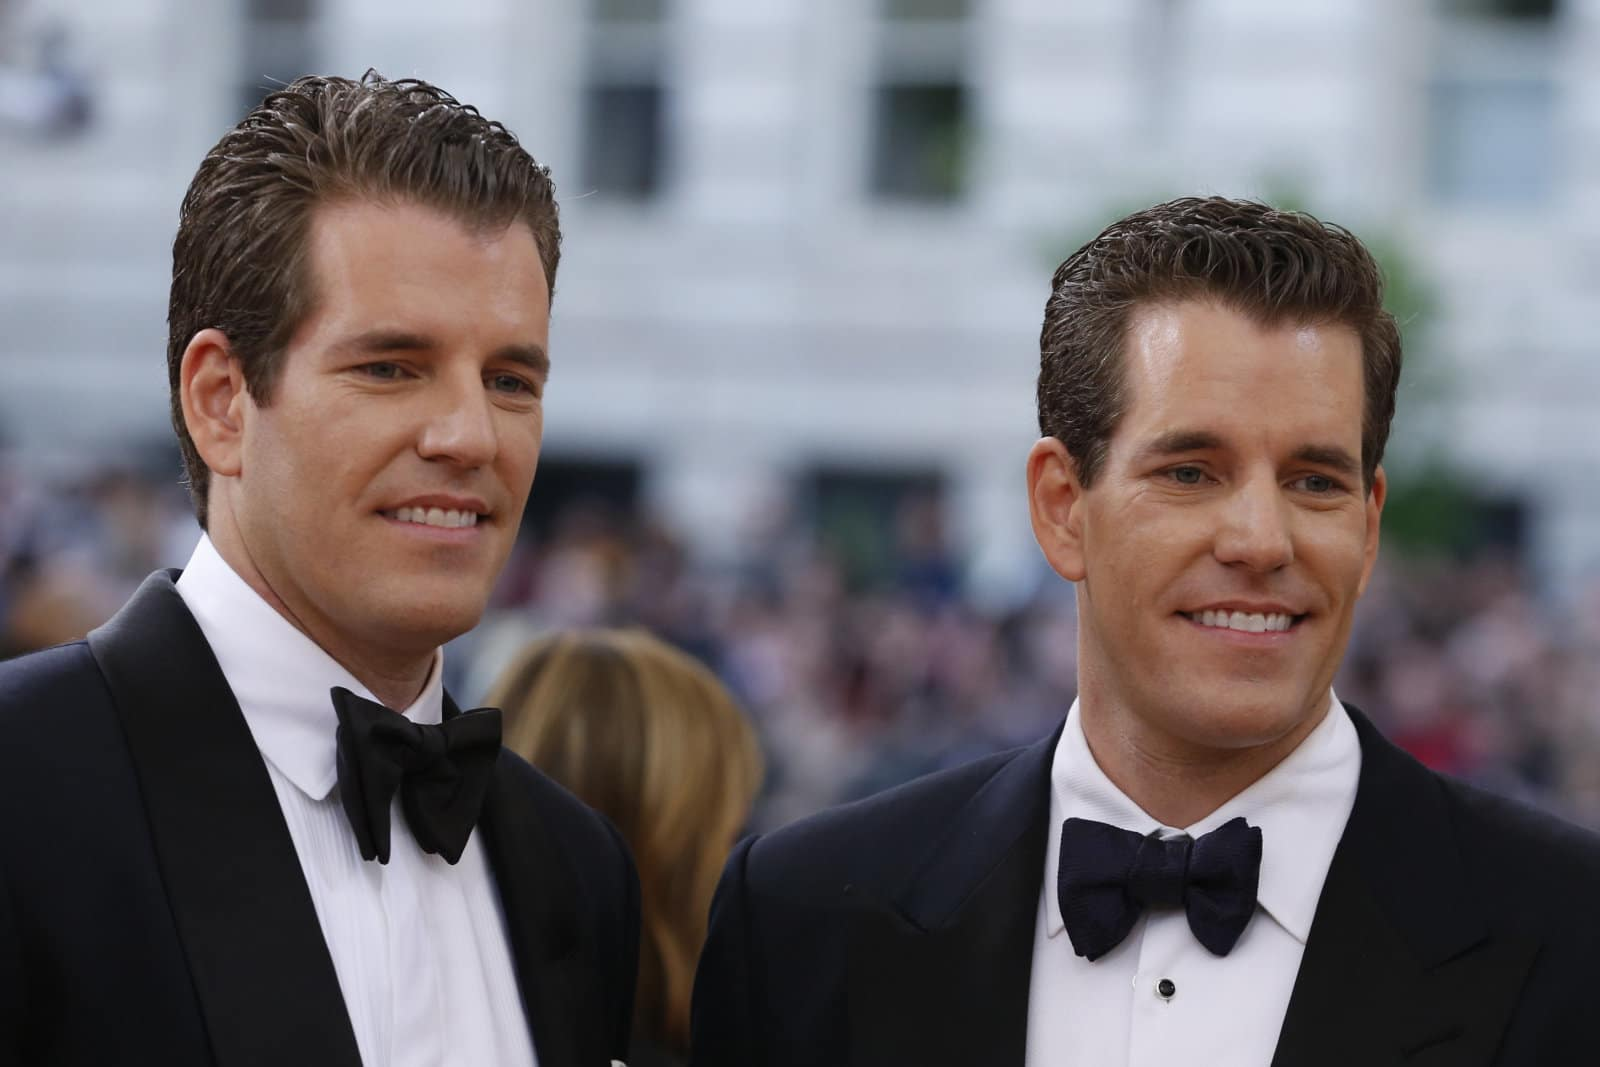 Winklevoss Twins Bought 200000 Bitcoins @ $7: Author of Bitcoin Billionaires